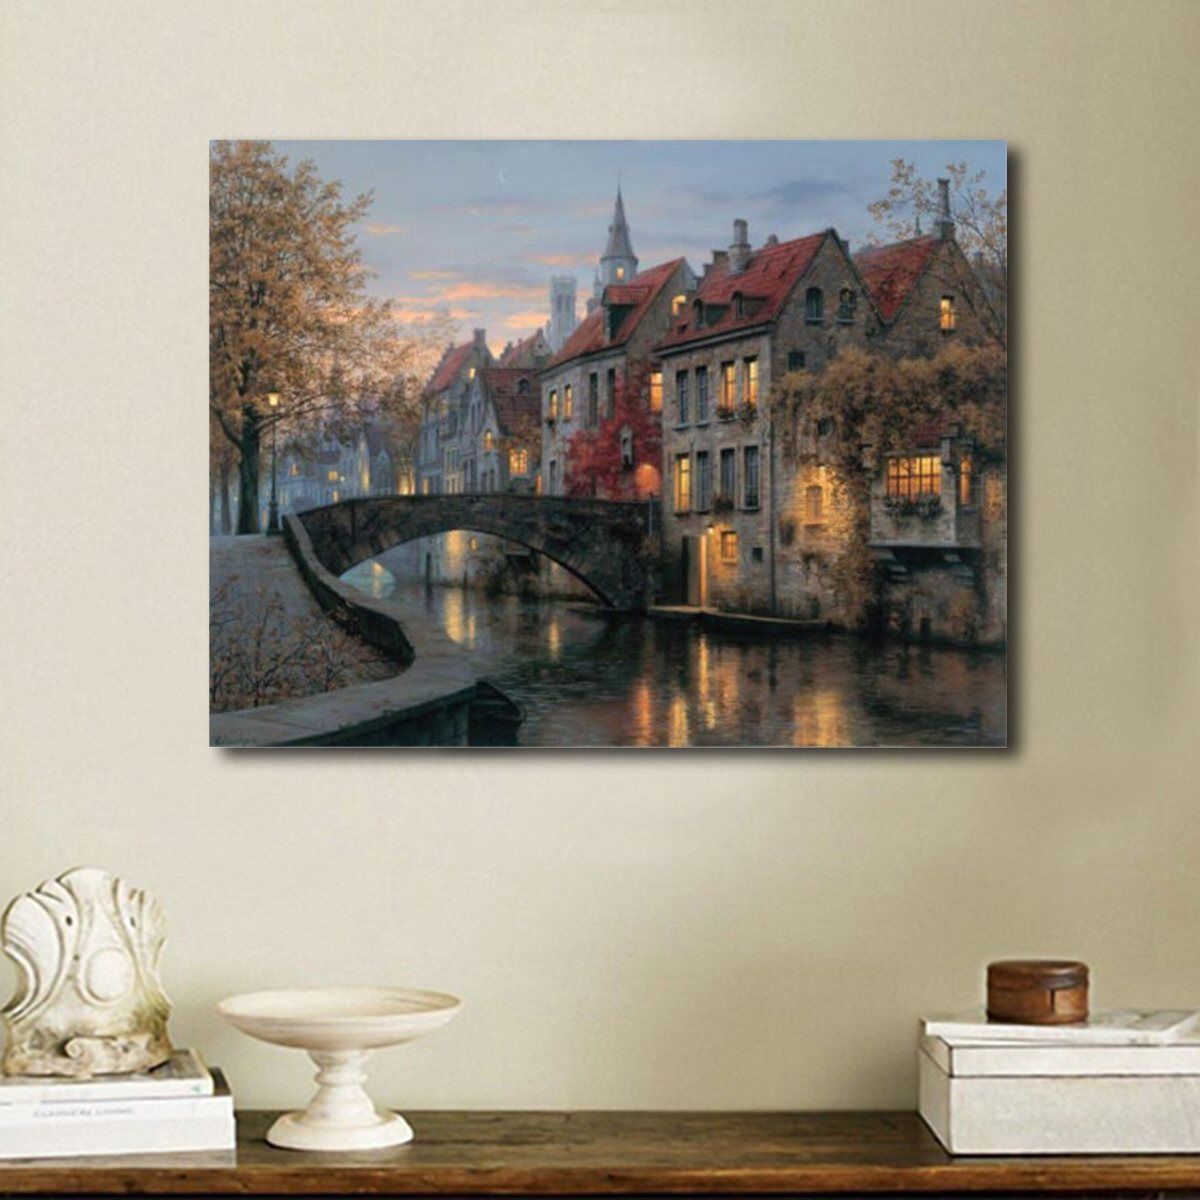 Modern river house canvas painting 40x30cm scenic pictures for Canvas mural painting